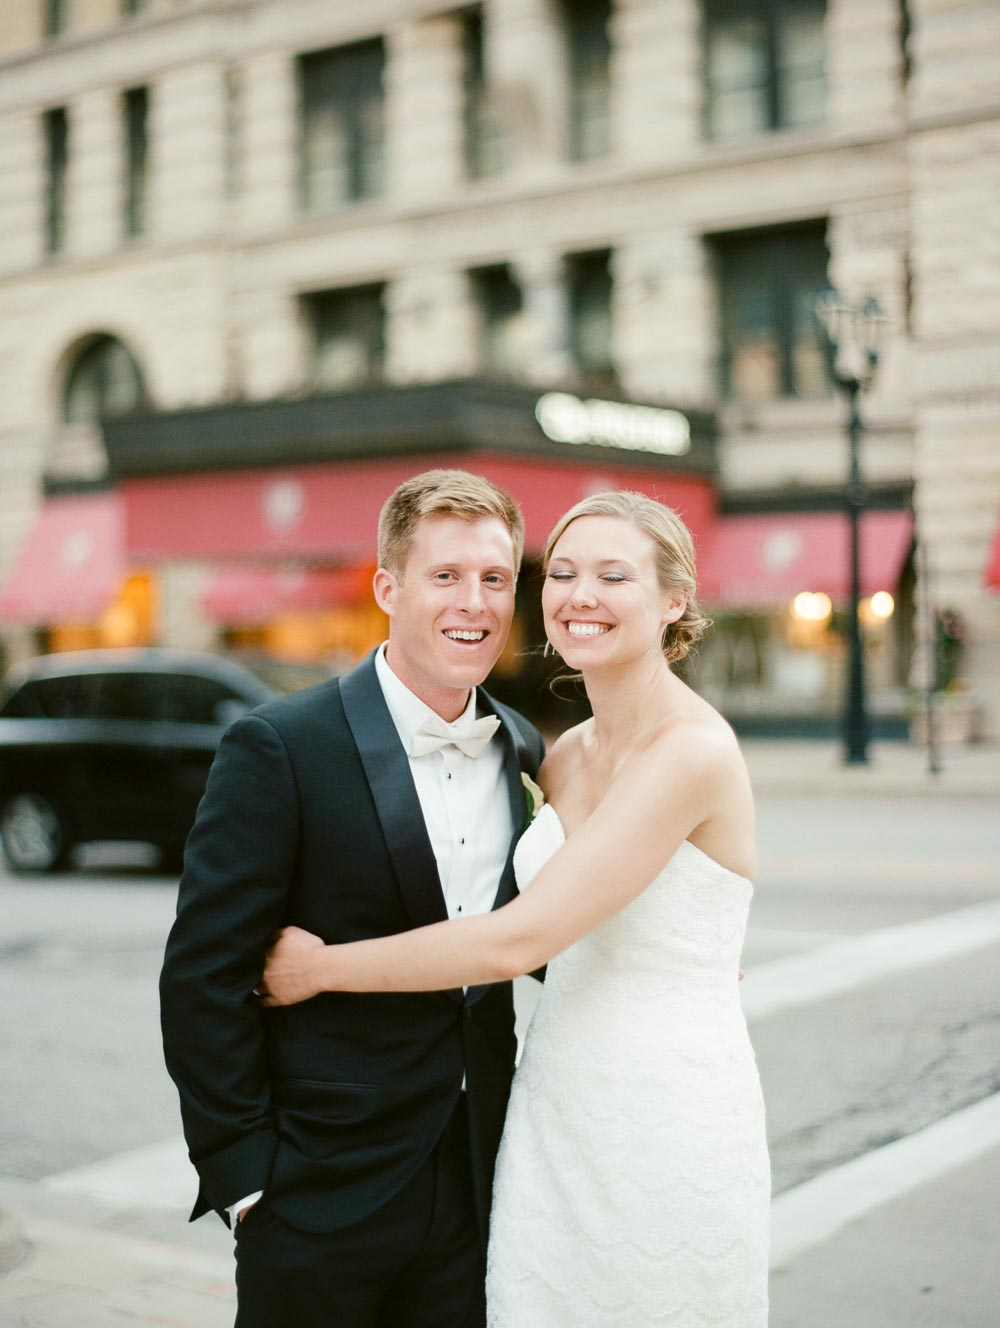 kateweinsteinphoto_milwaukee_pfister_hotel_wedding-155.jpg